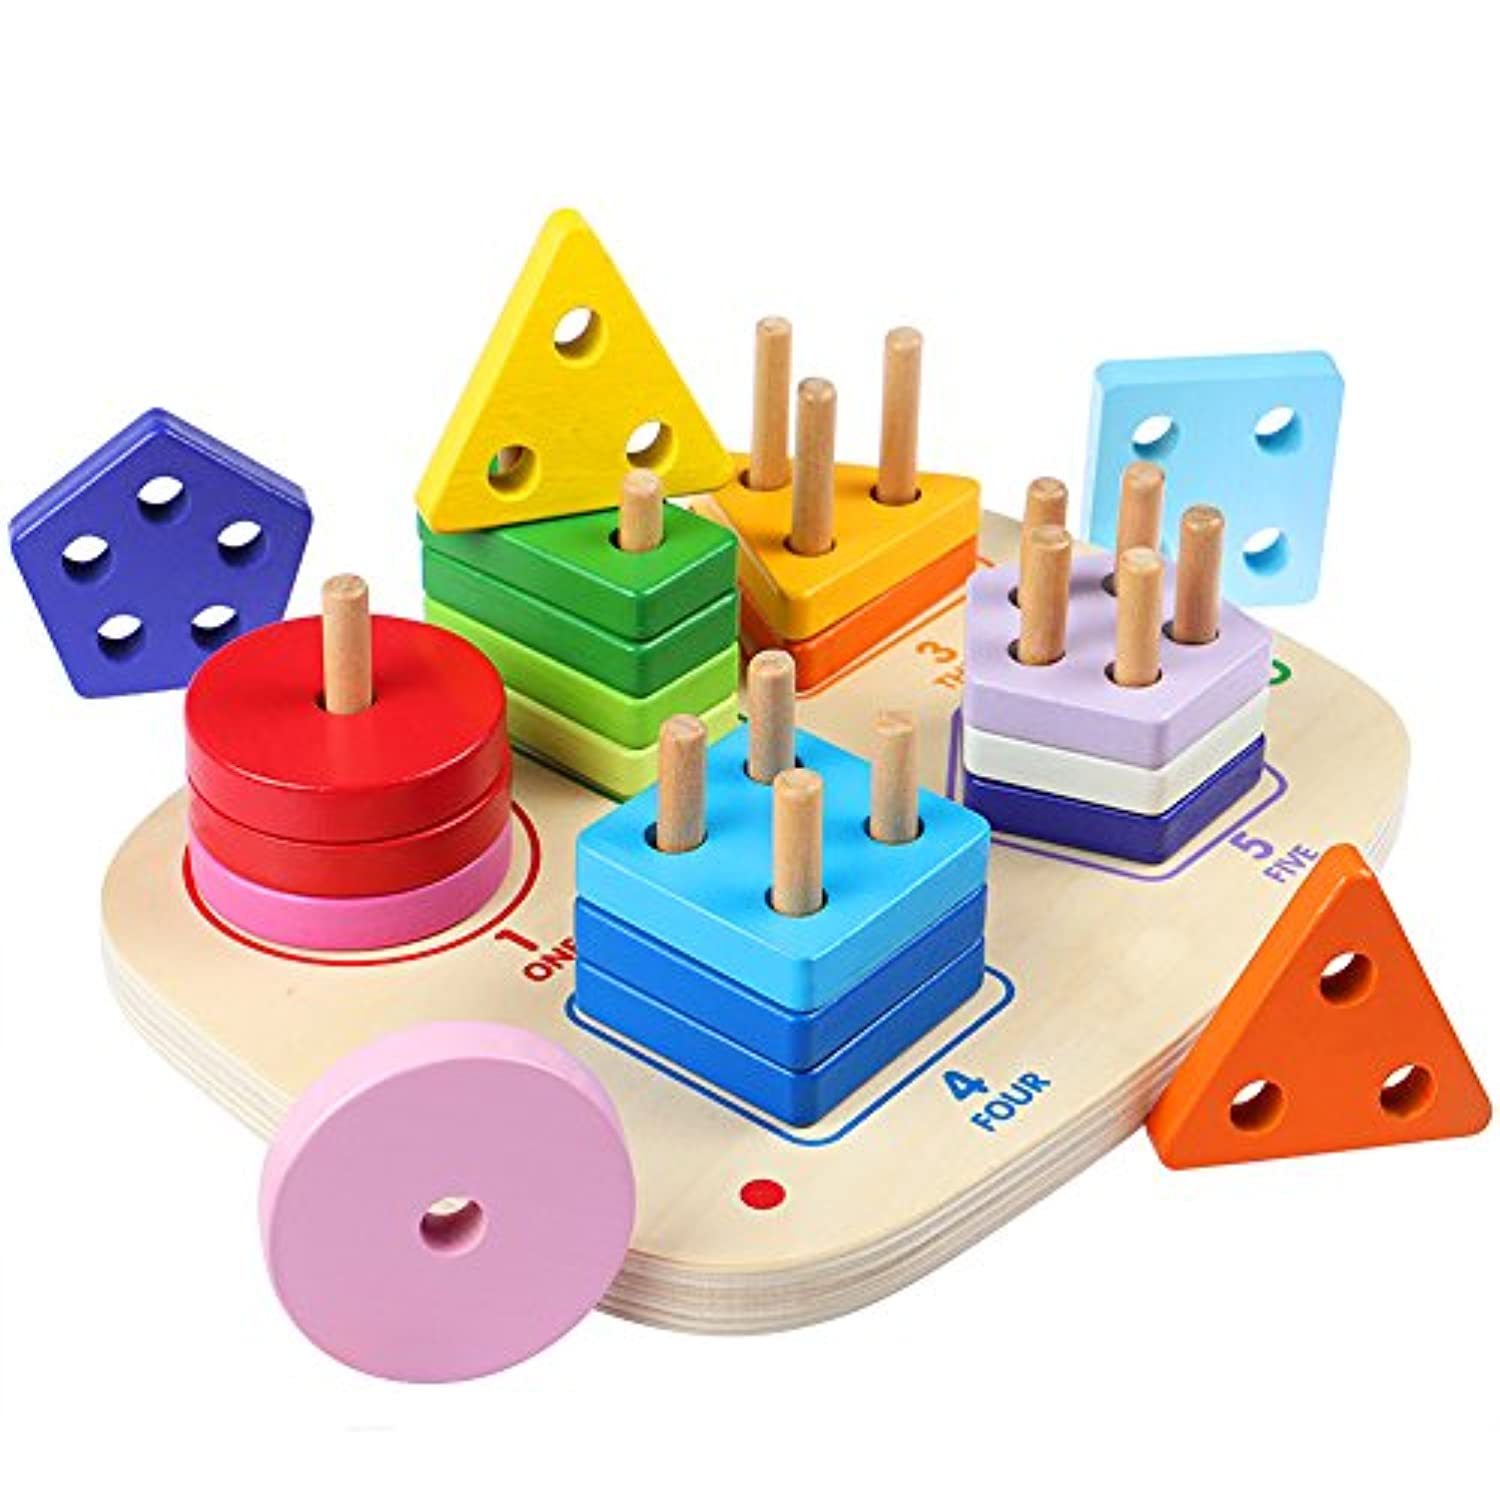 Lewo Wooden Educational Preschool Shapes Puzzle Toddler Toys Stacking Sorting Blocks Games for Kids